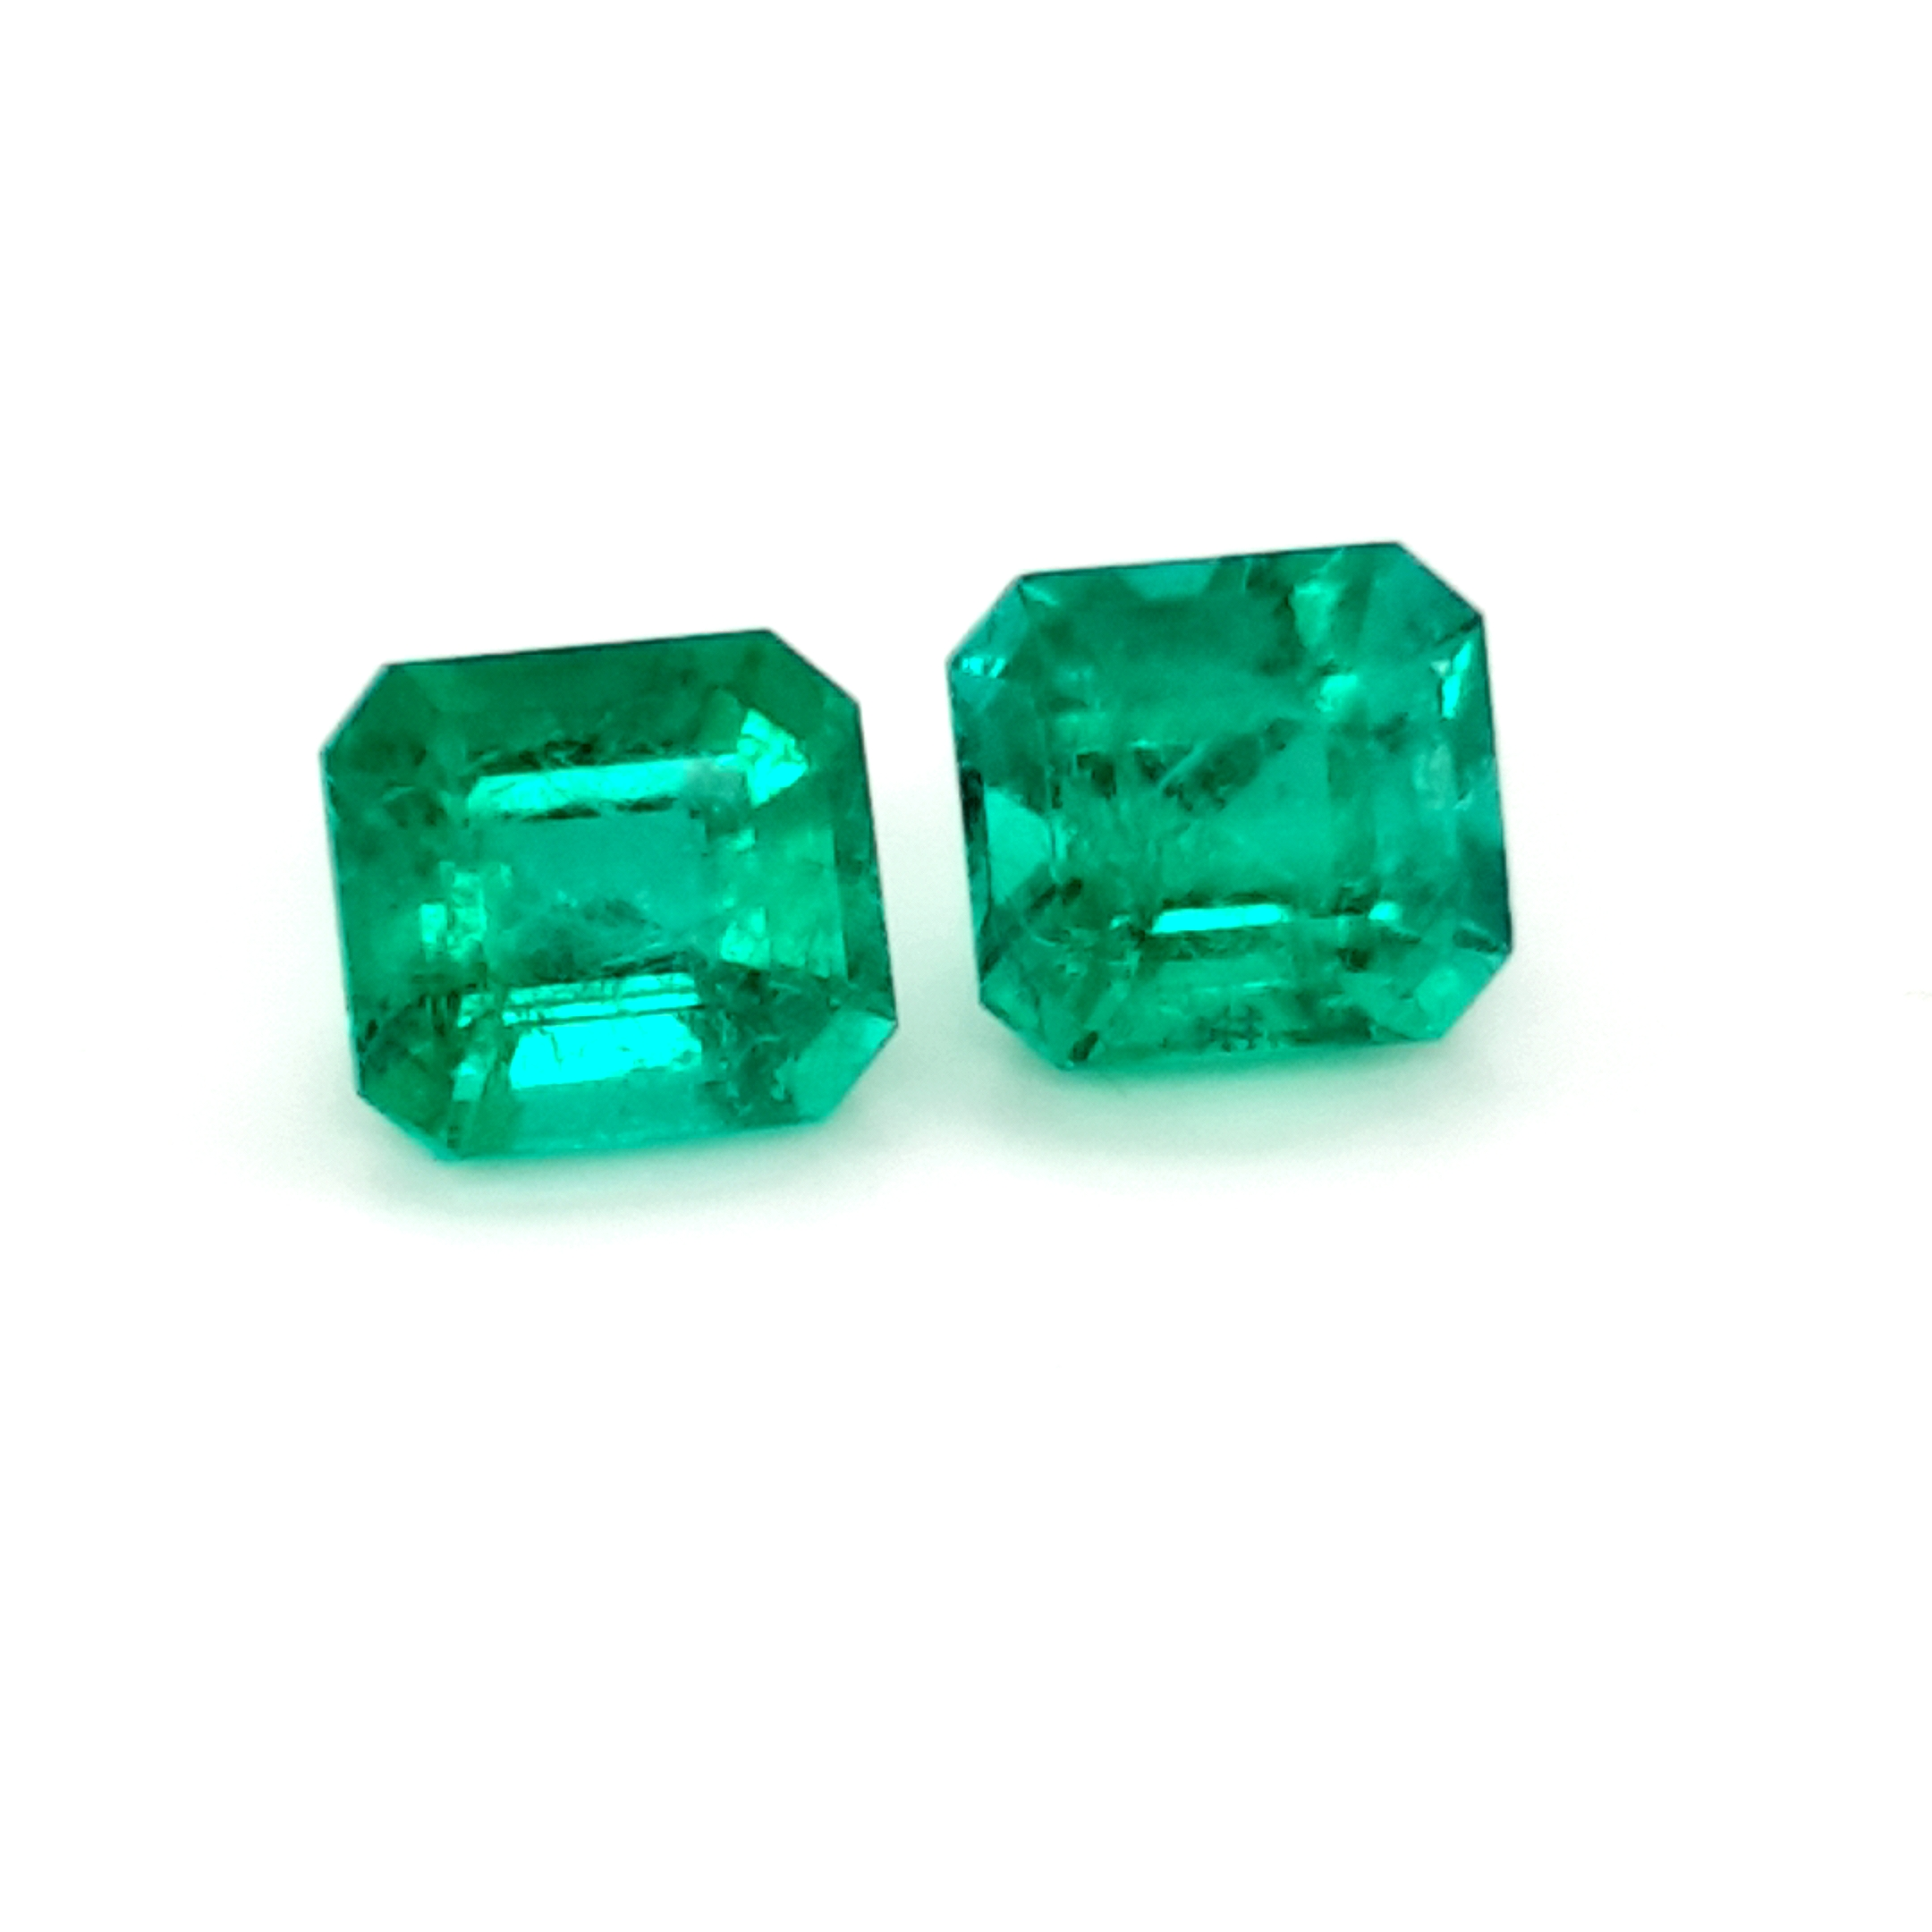 6,74ct. Emerald from Colombia cert. EMI18D4 ClaudiaHamann__2021-03-26-13-25-26